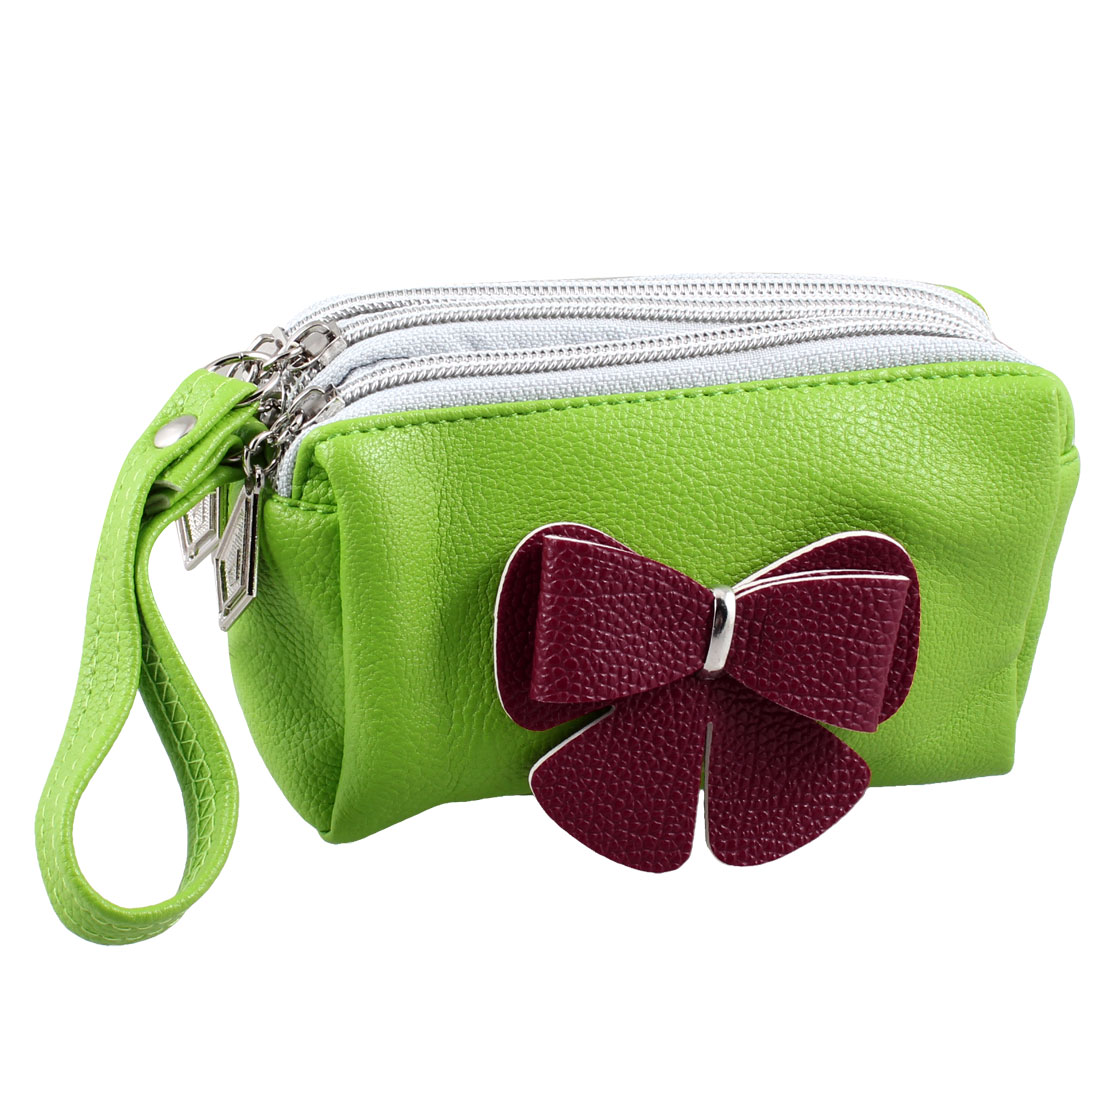 Ladies 3D Bowknot Accent Green Textured Faux Leather Wrist Bag Purse